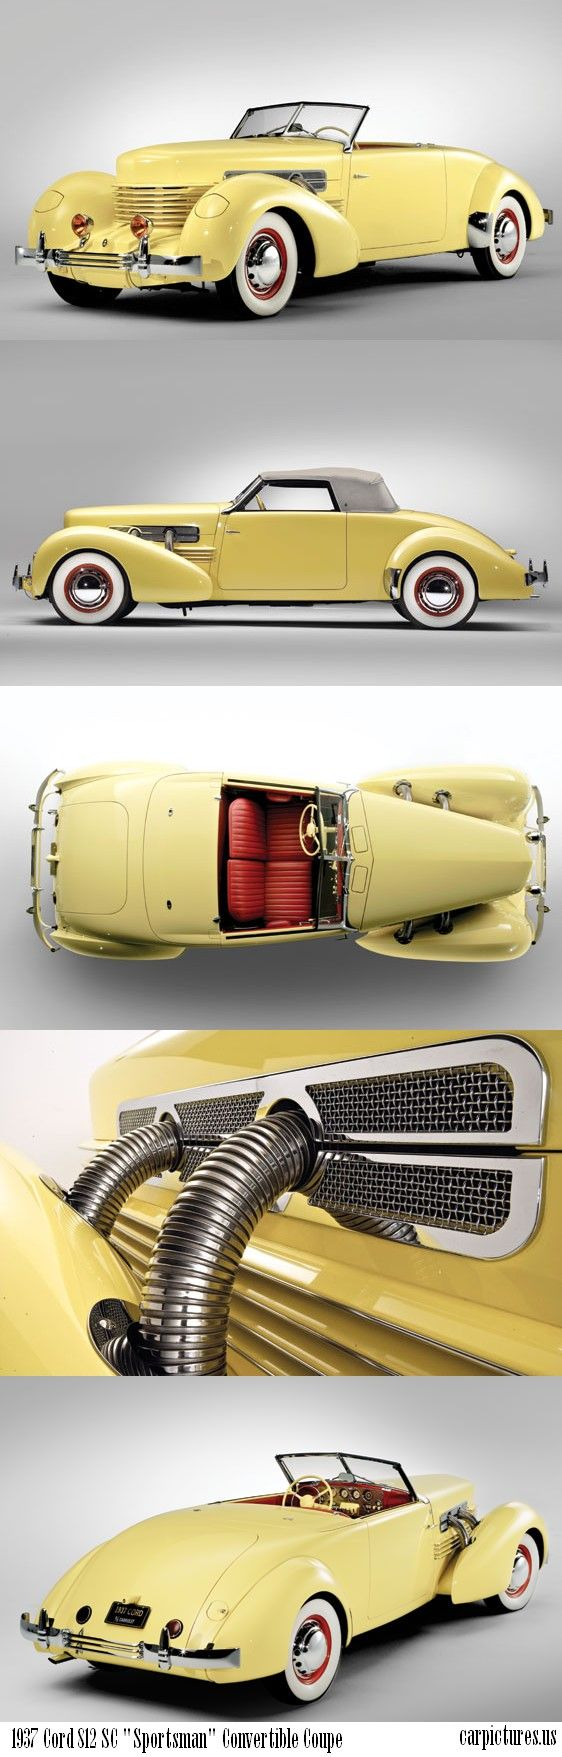 "1937 Cord 812 SC ""Sportsman"" Convertible Coupe. The 'coffin nose' Cord was the first American front wheel drive car."